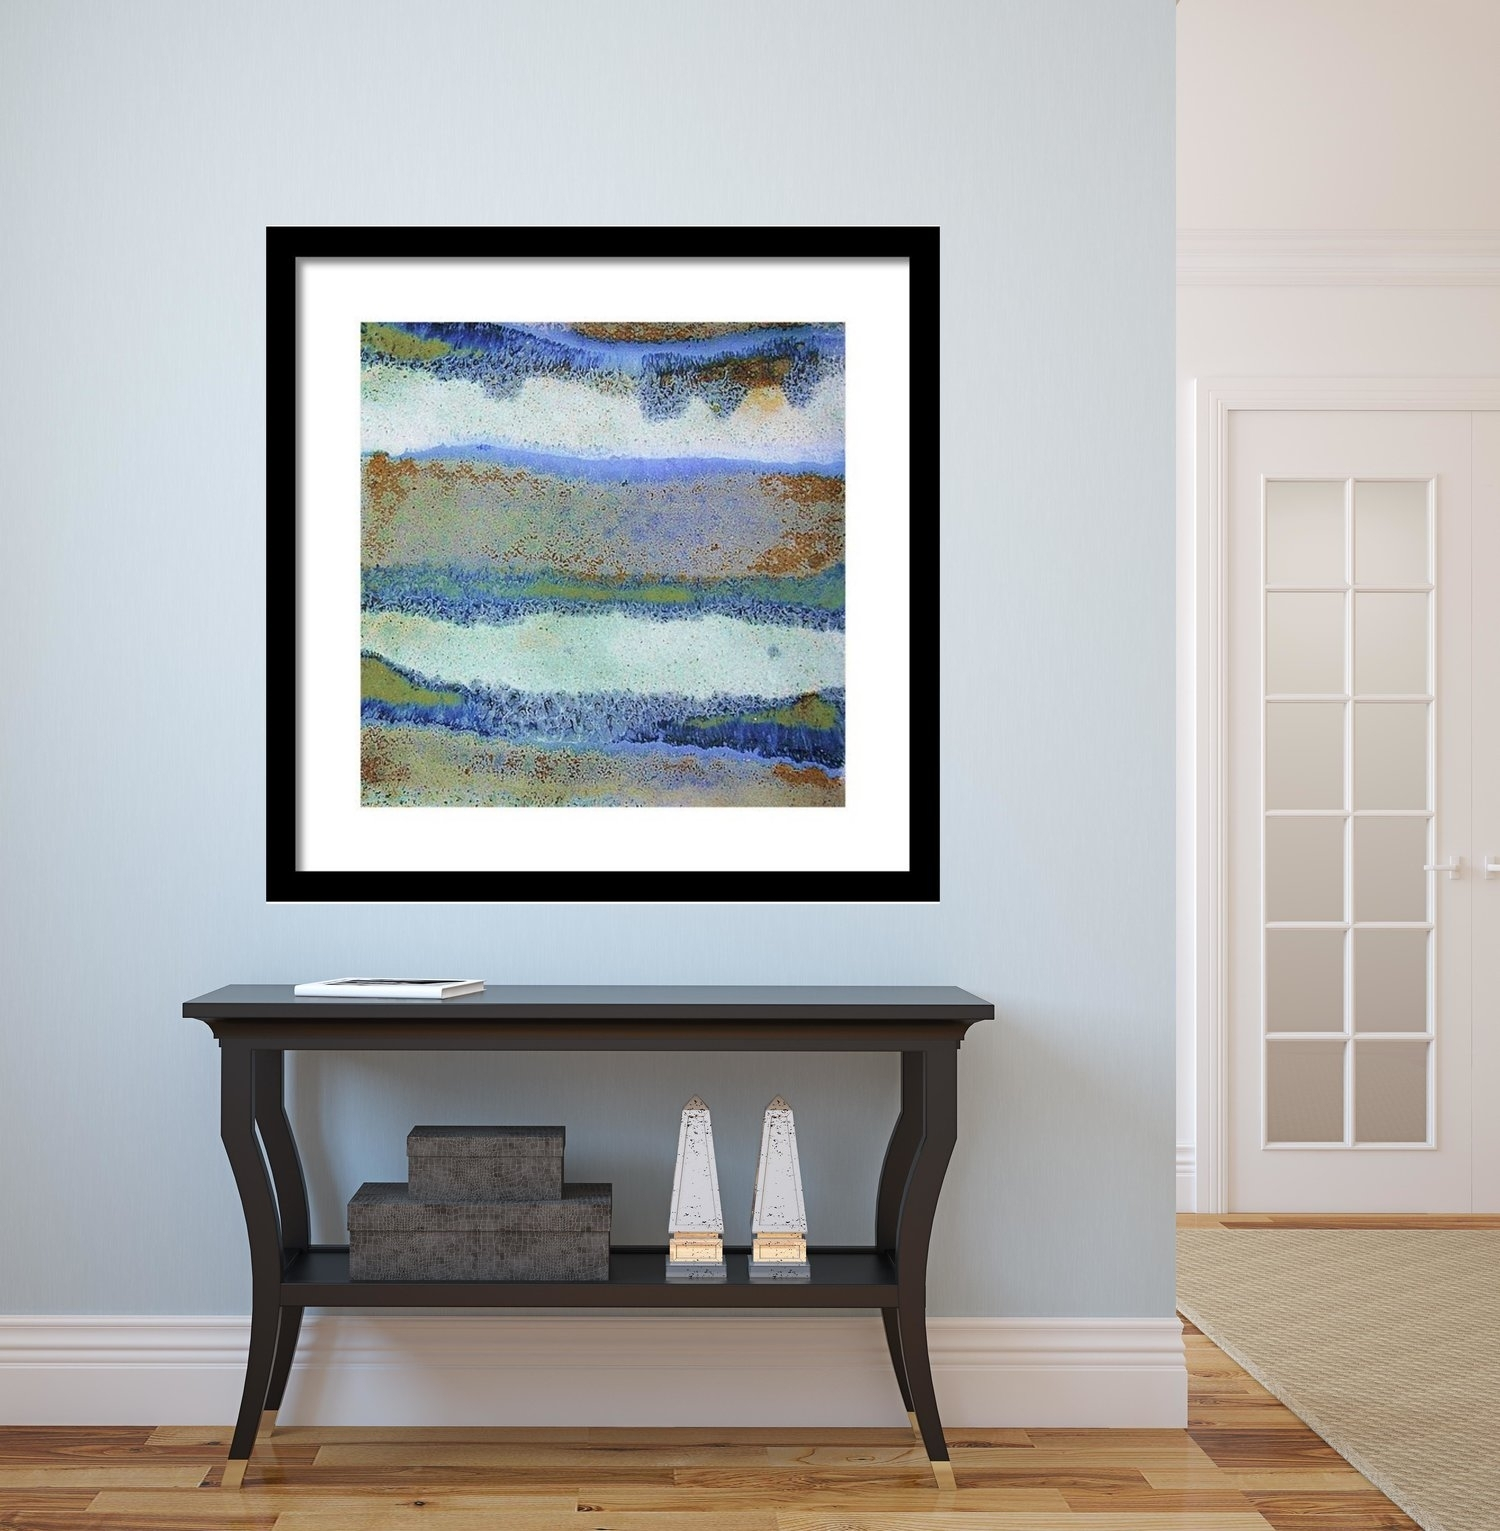 Abstract Framed Wall Art – Square #33 | Modern Wall Art, Blue For Latest Abstract Framed Art Prints (View 2 of 15)